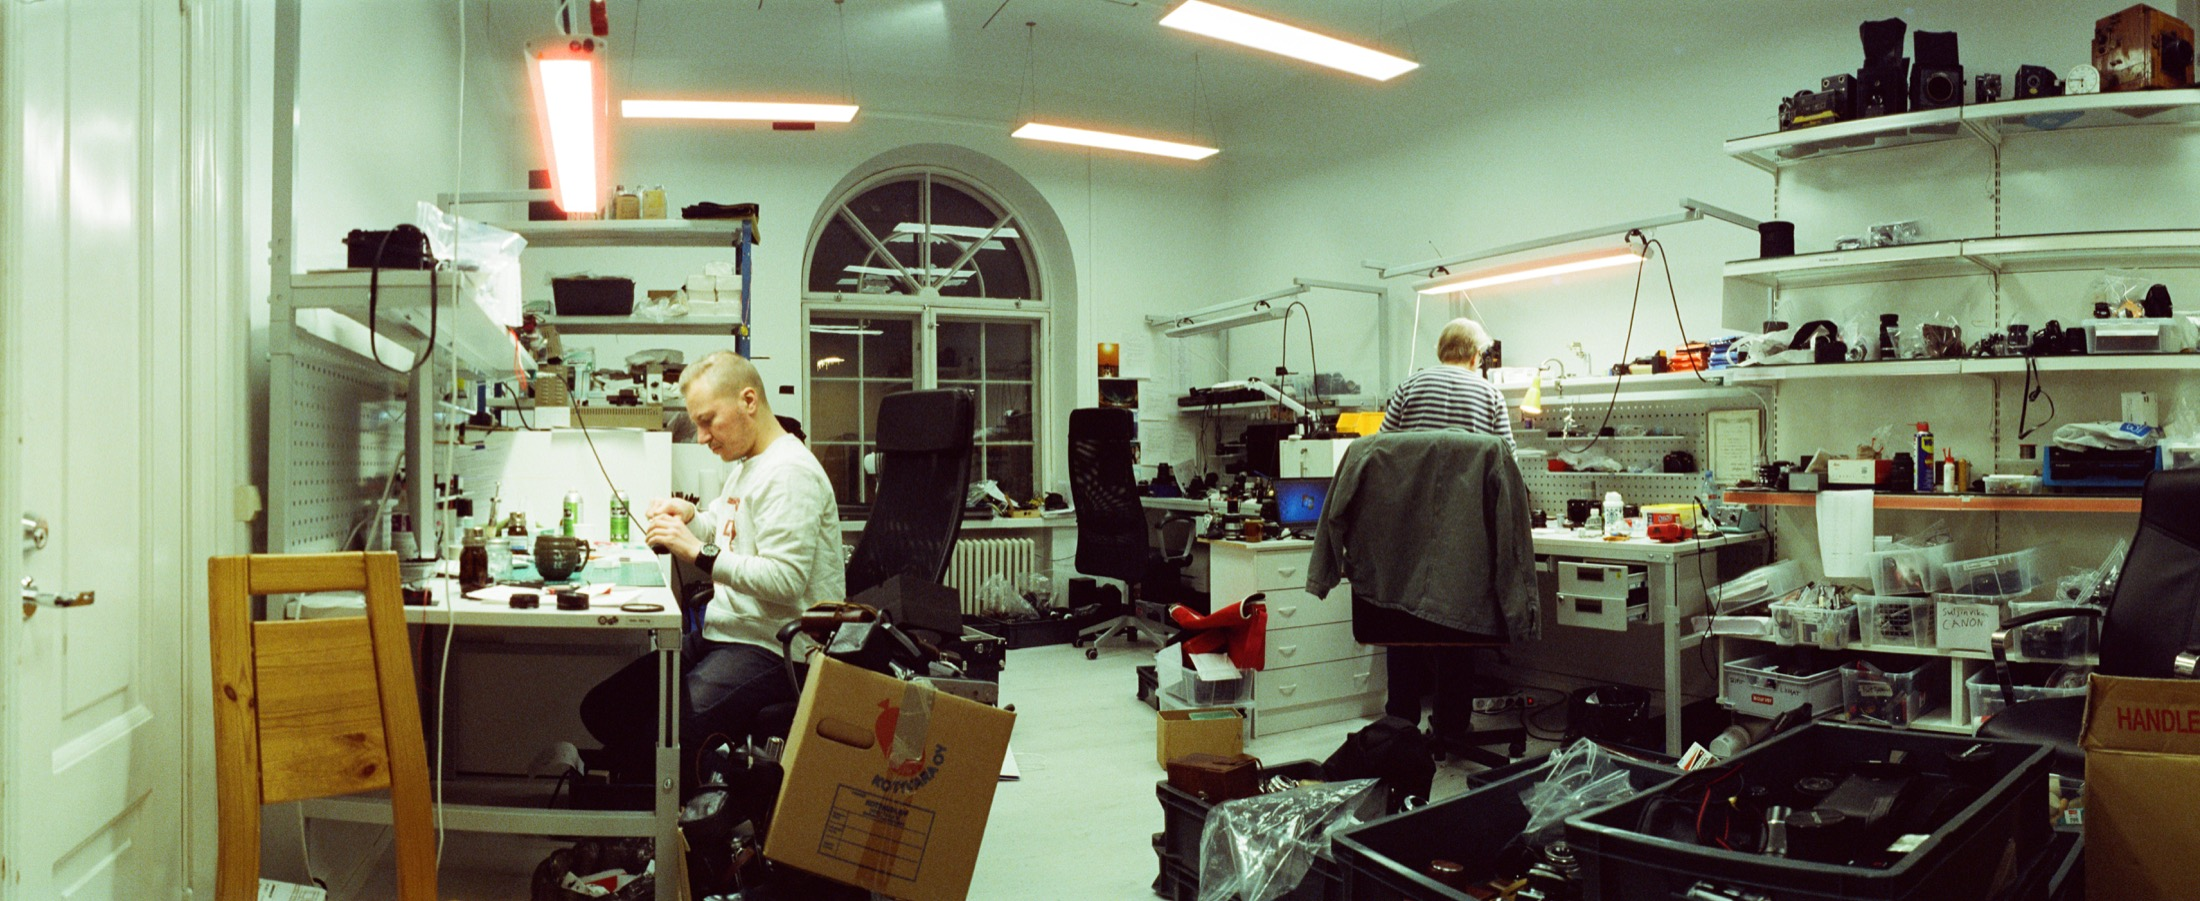 Cameramakers team inside the Camera Rescue Center in Finland.